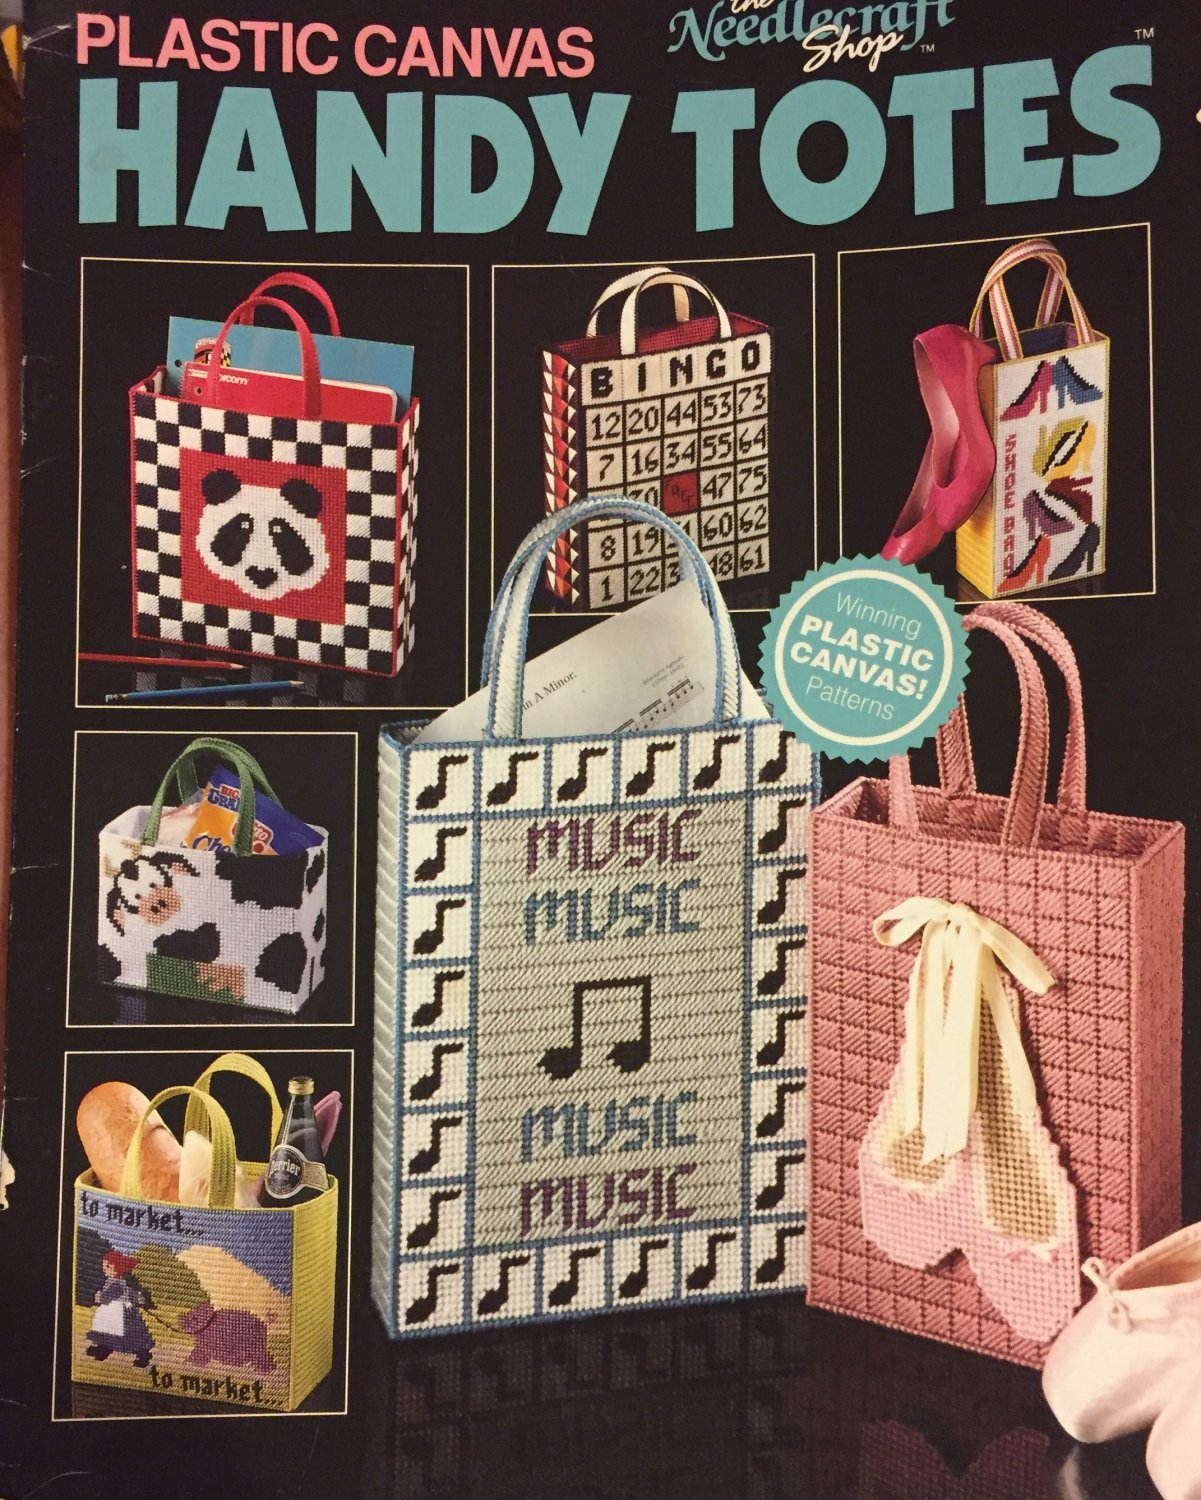 Handy Totes Plastic Canvas Patterns The Needlecraft Shop 90PB2